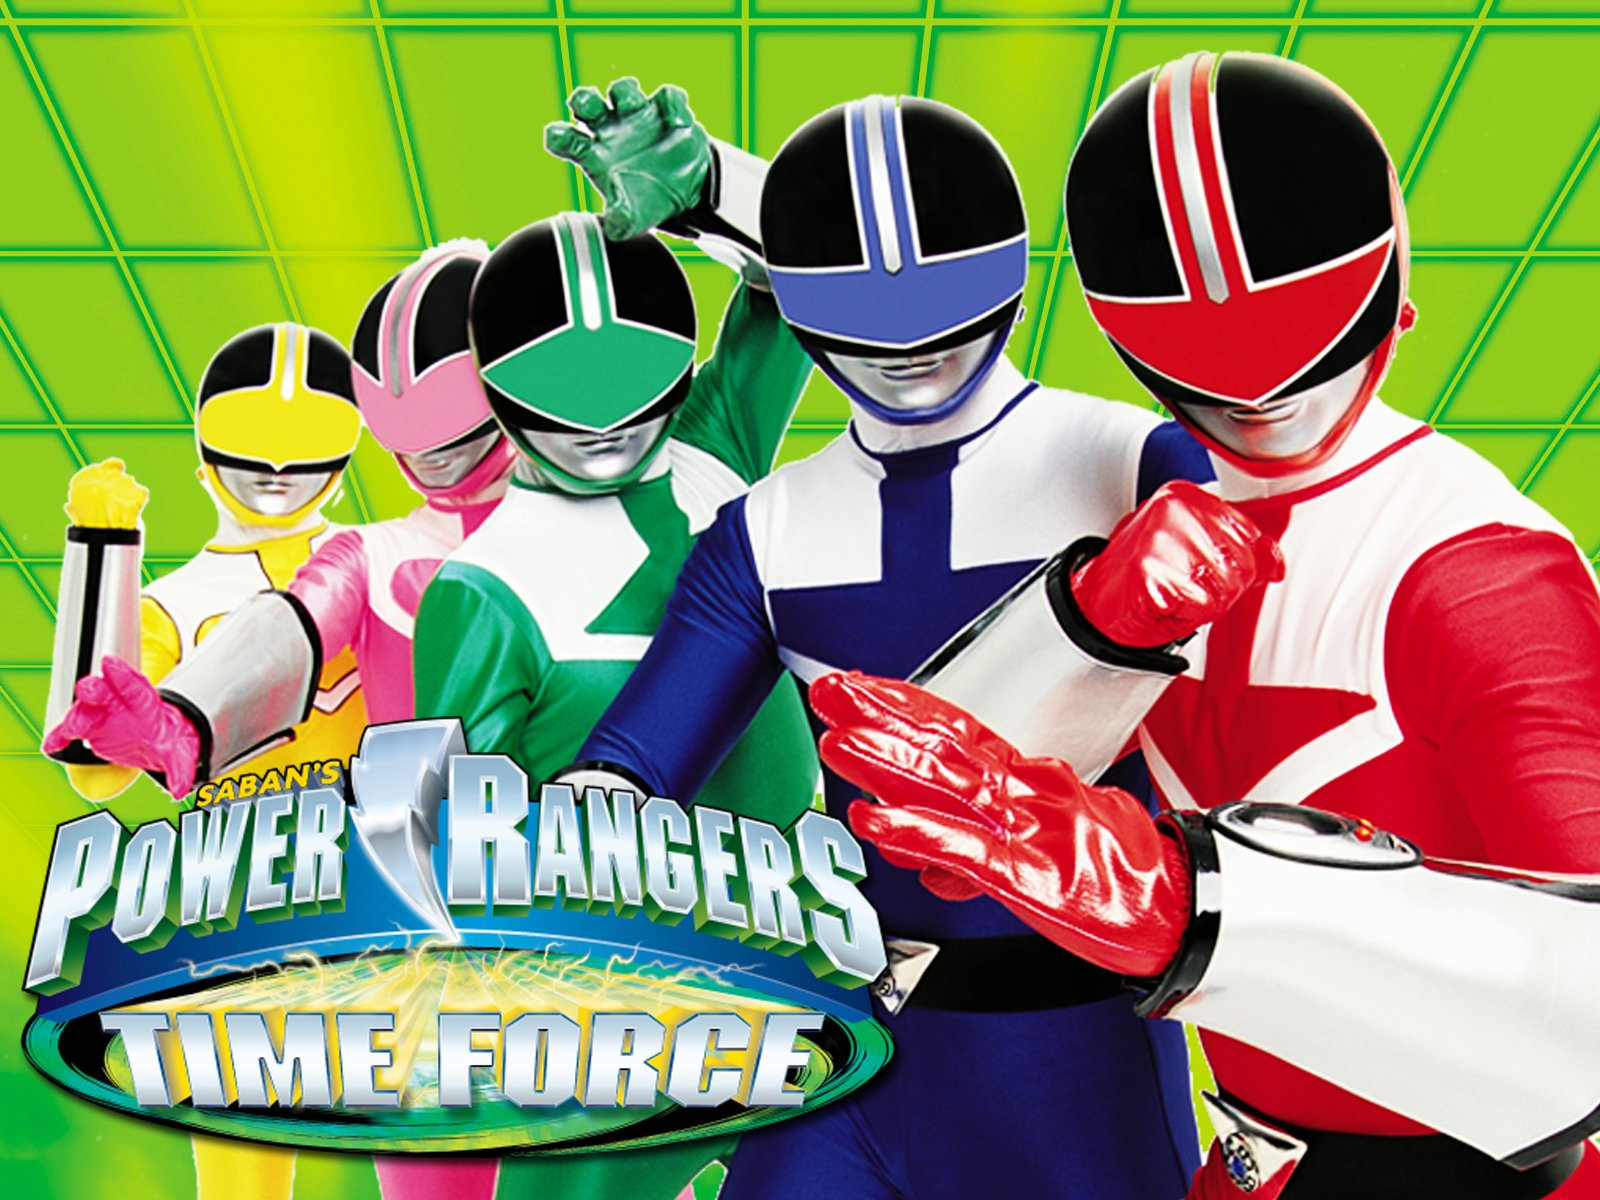 Amazon.com: Power Rangers Time Force Season 1: Jason Faunt;Michael Copon;Deborah Estelle Phillips, Haim Saban & Toei Company LTD